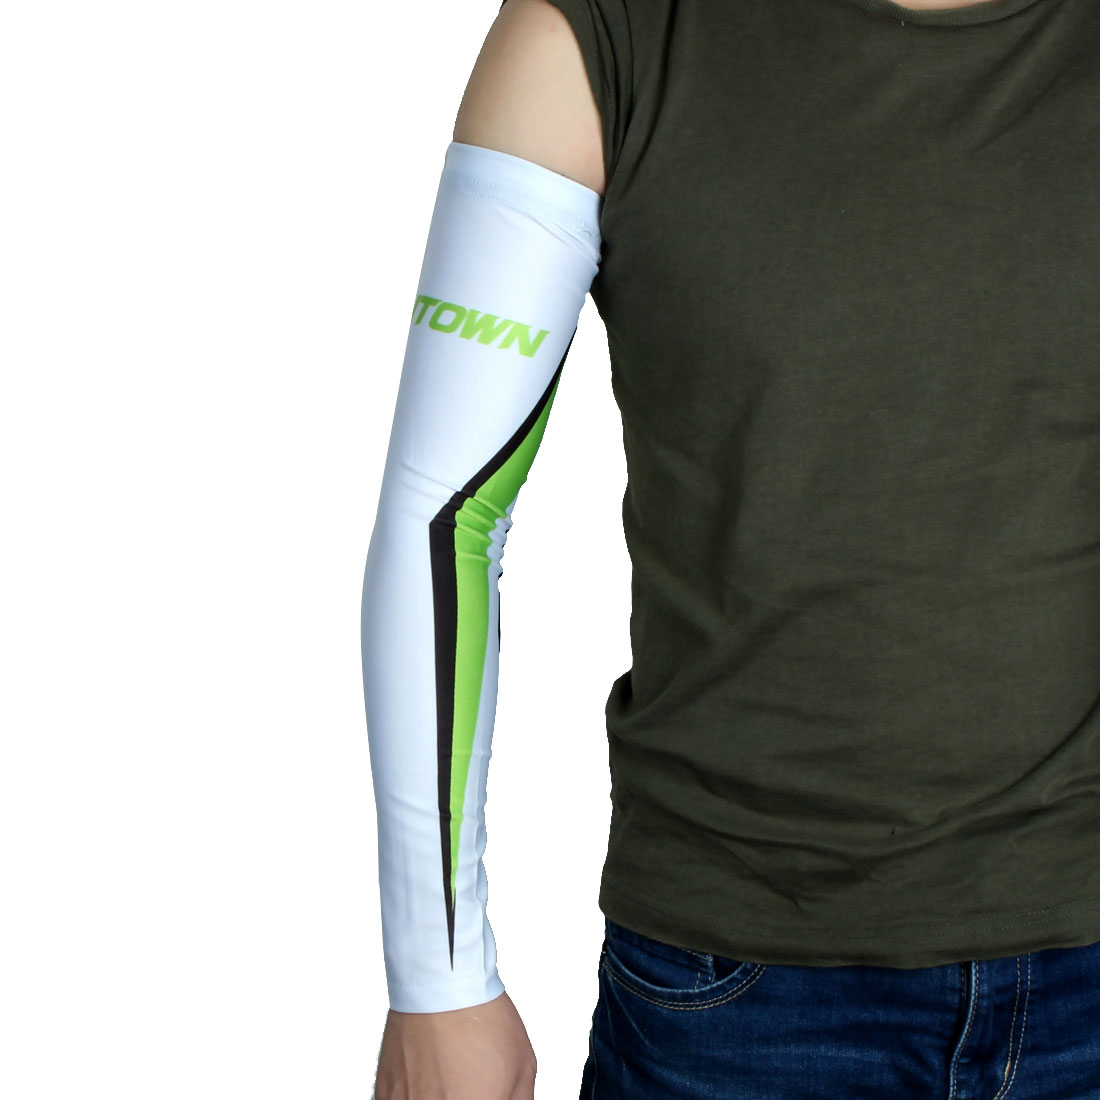 XINTOWN Authorized Cycling Wrap Cooler Band Arm Sleeves Support Protector M Pair - image 1 of 5